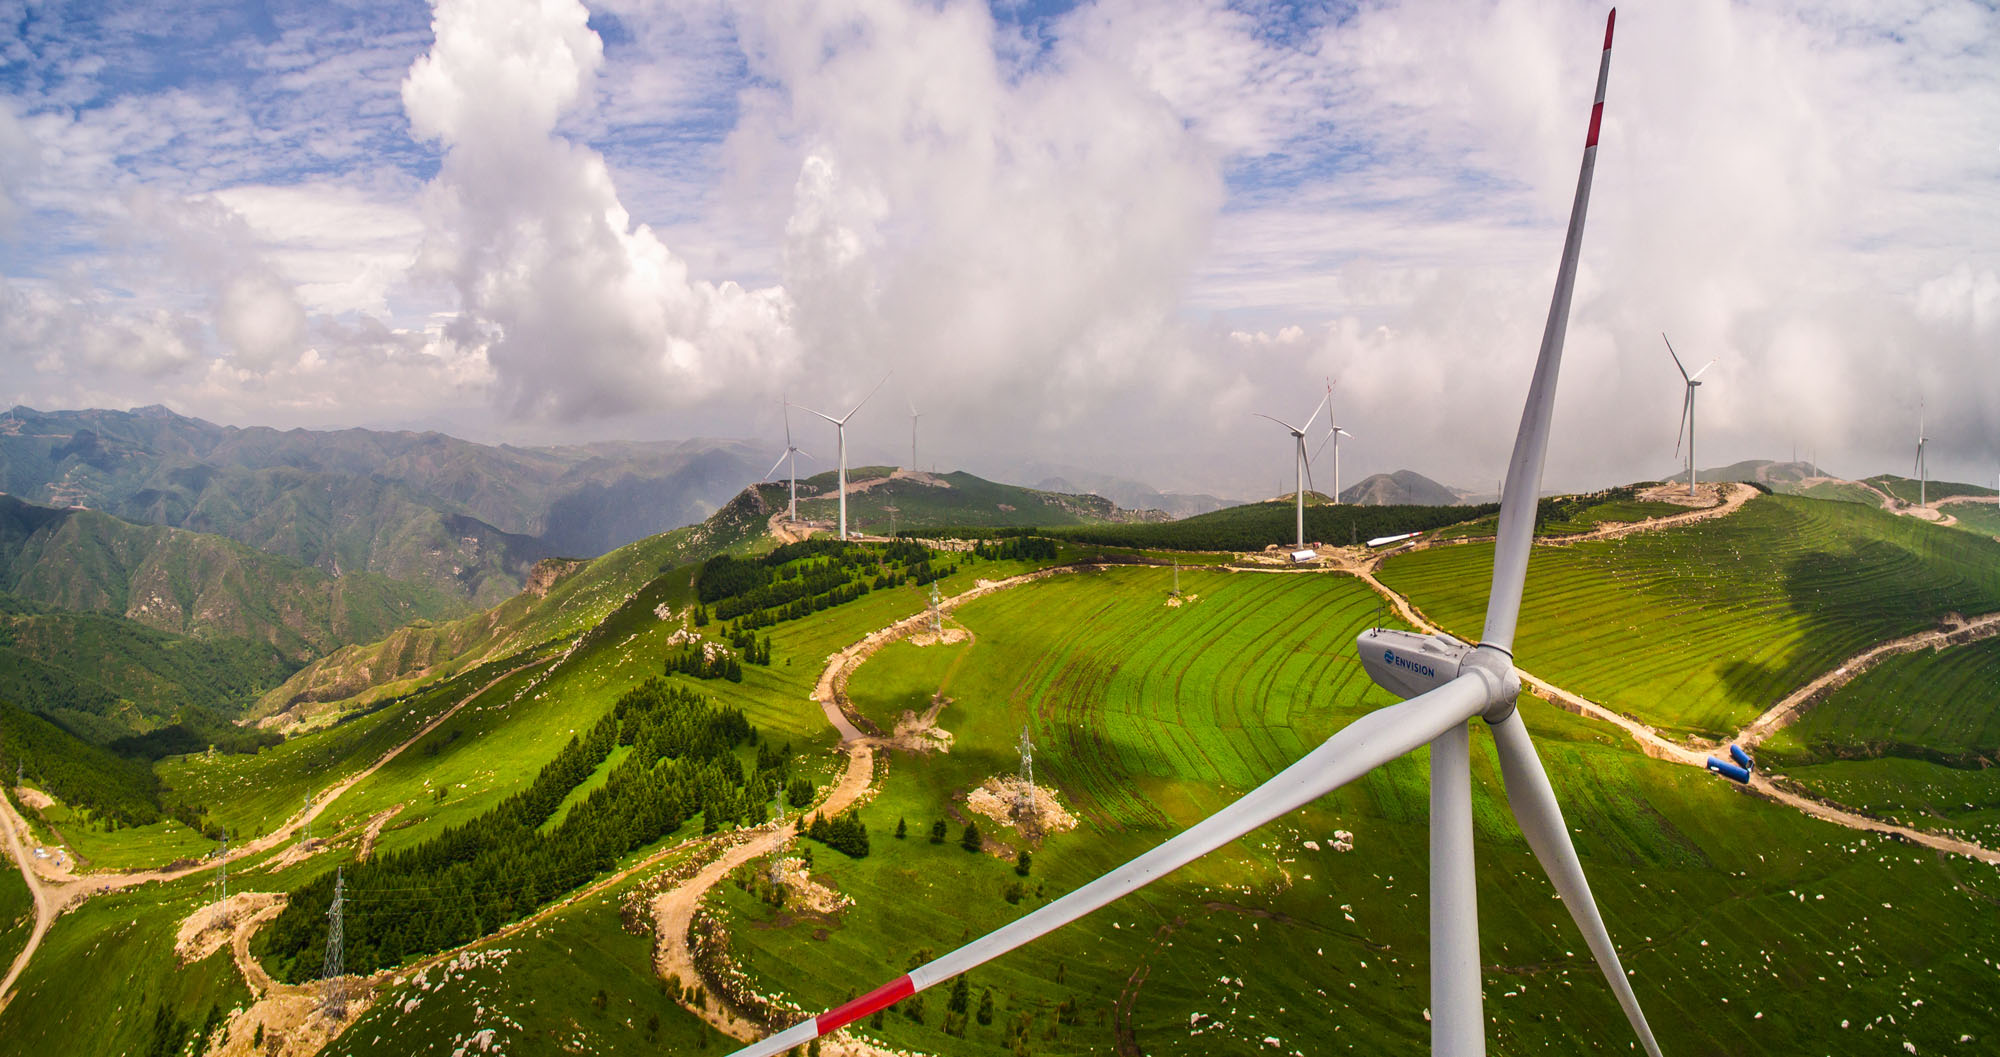 China's Progress and Growing Role in Sustainable Development